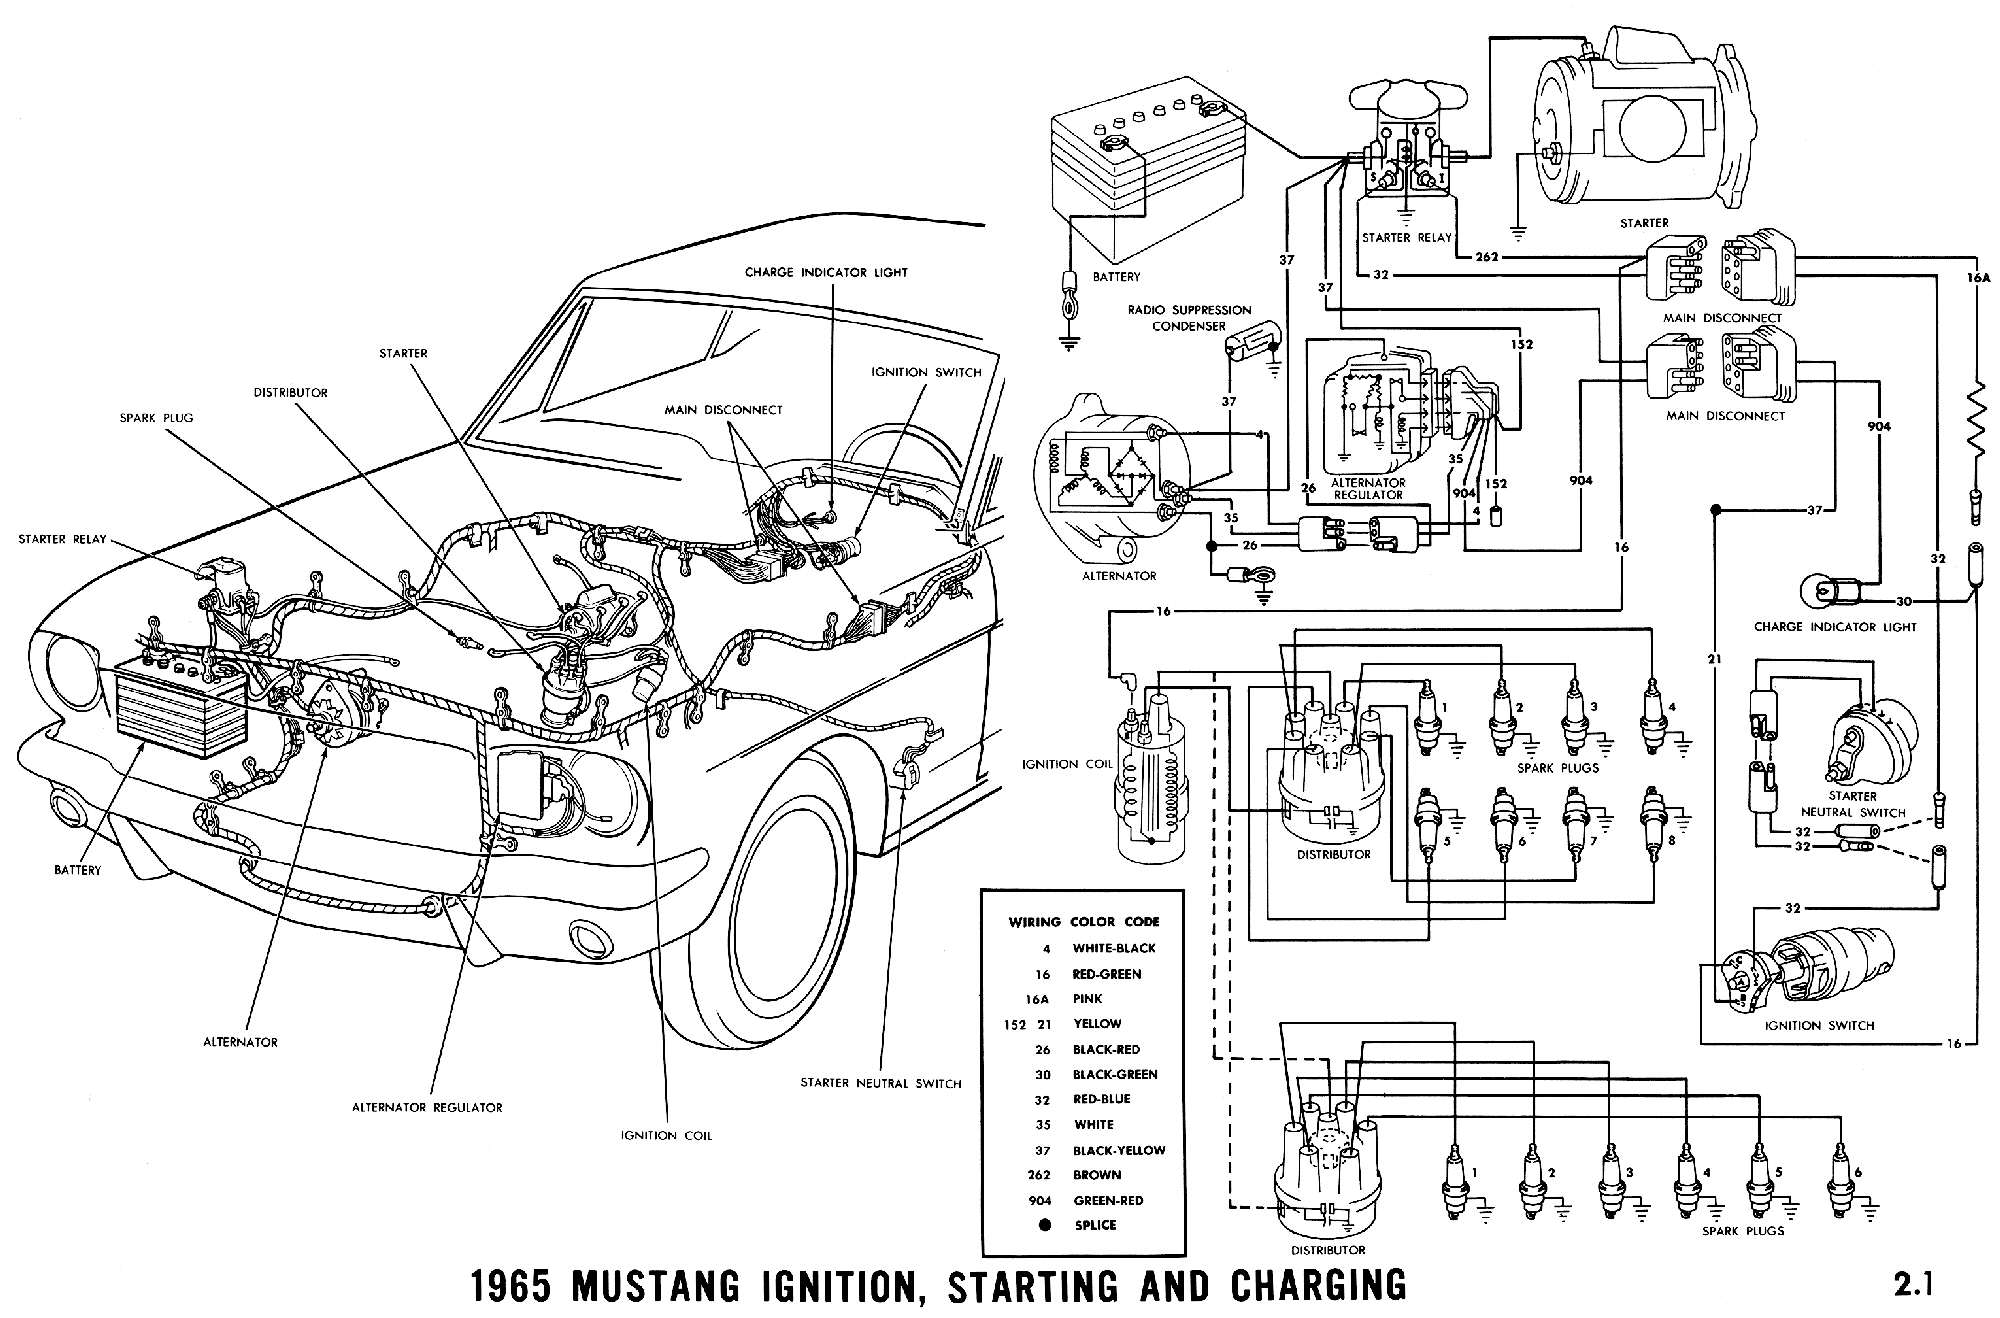 1965c 1965 mustang wiring diagrams average joe restoration engine wiring diagram at bakdesigns.co